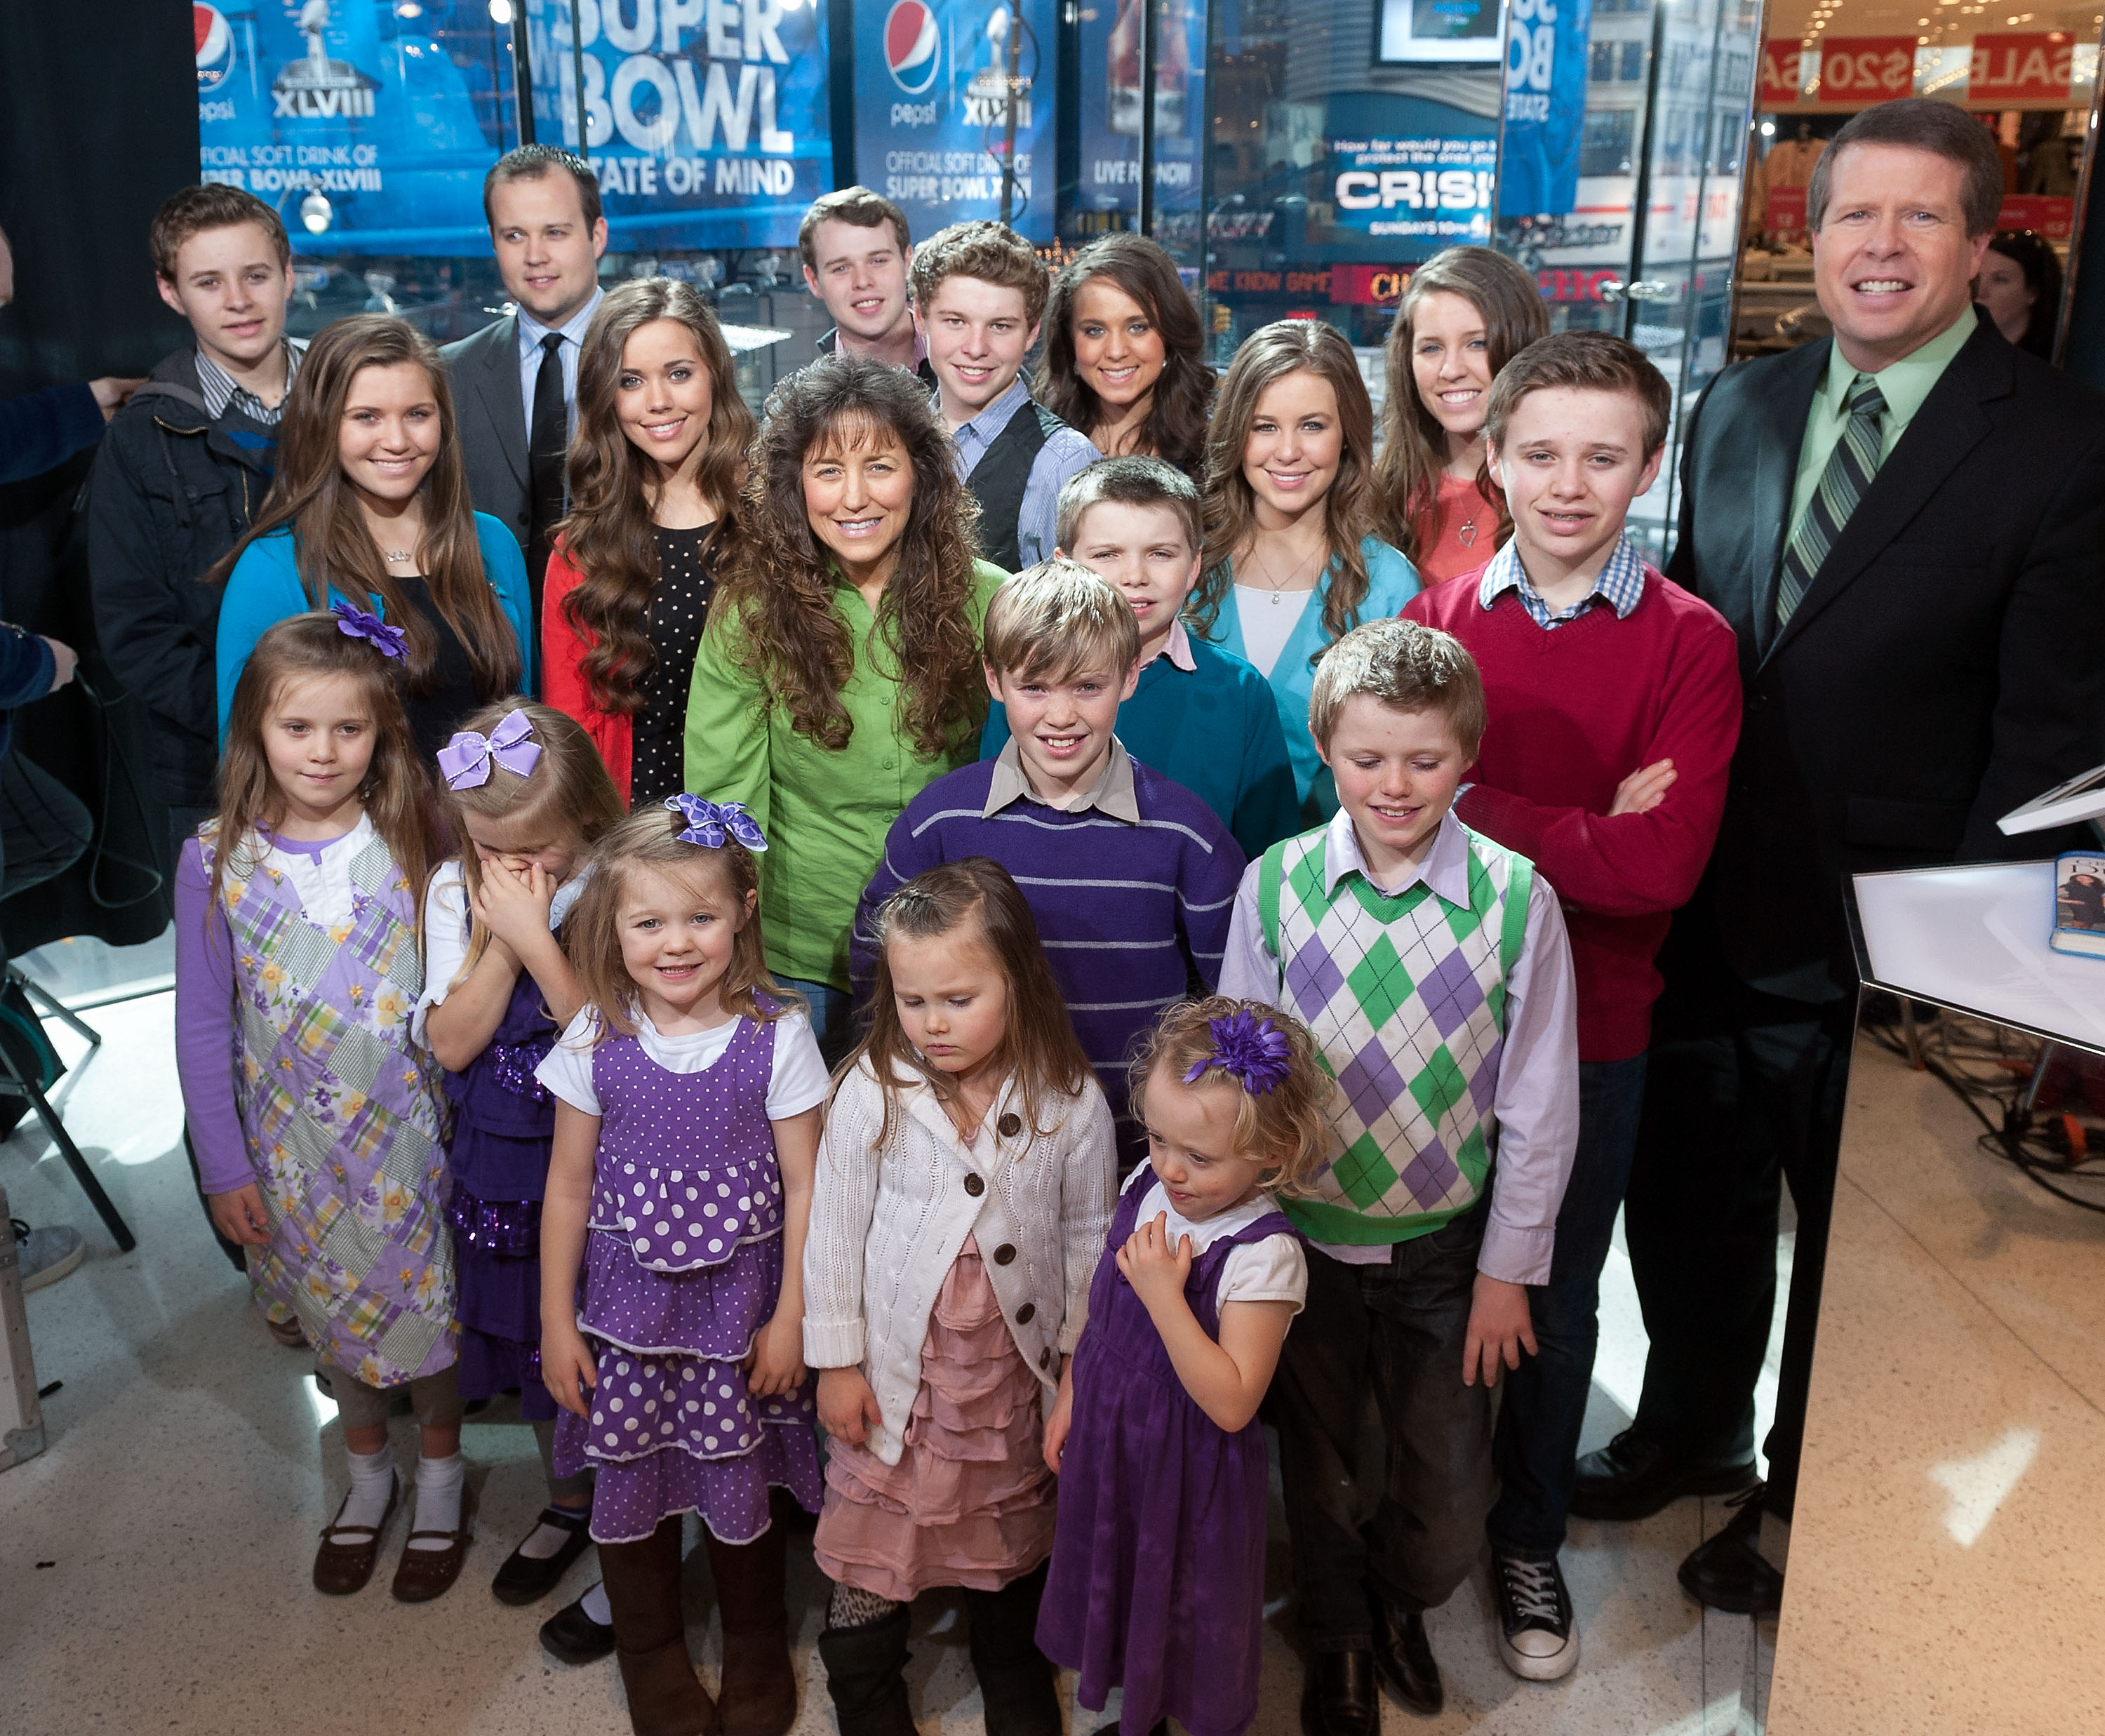 The Duggar family visits 'Extra' at their New York studios at H&M in Times Square on March 11, 2014 in New York City.